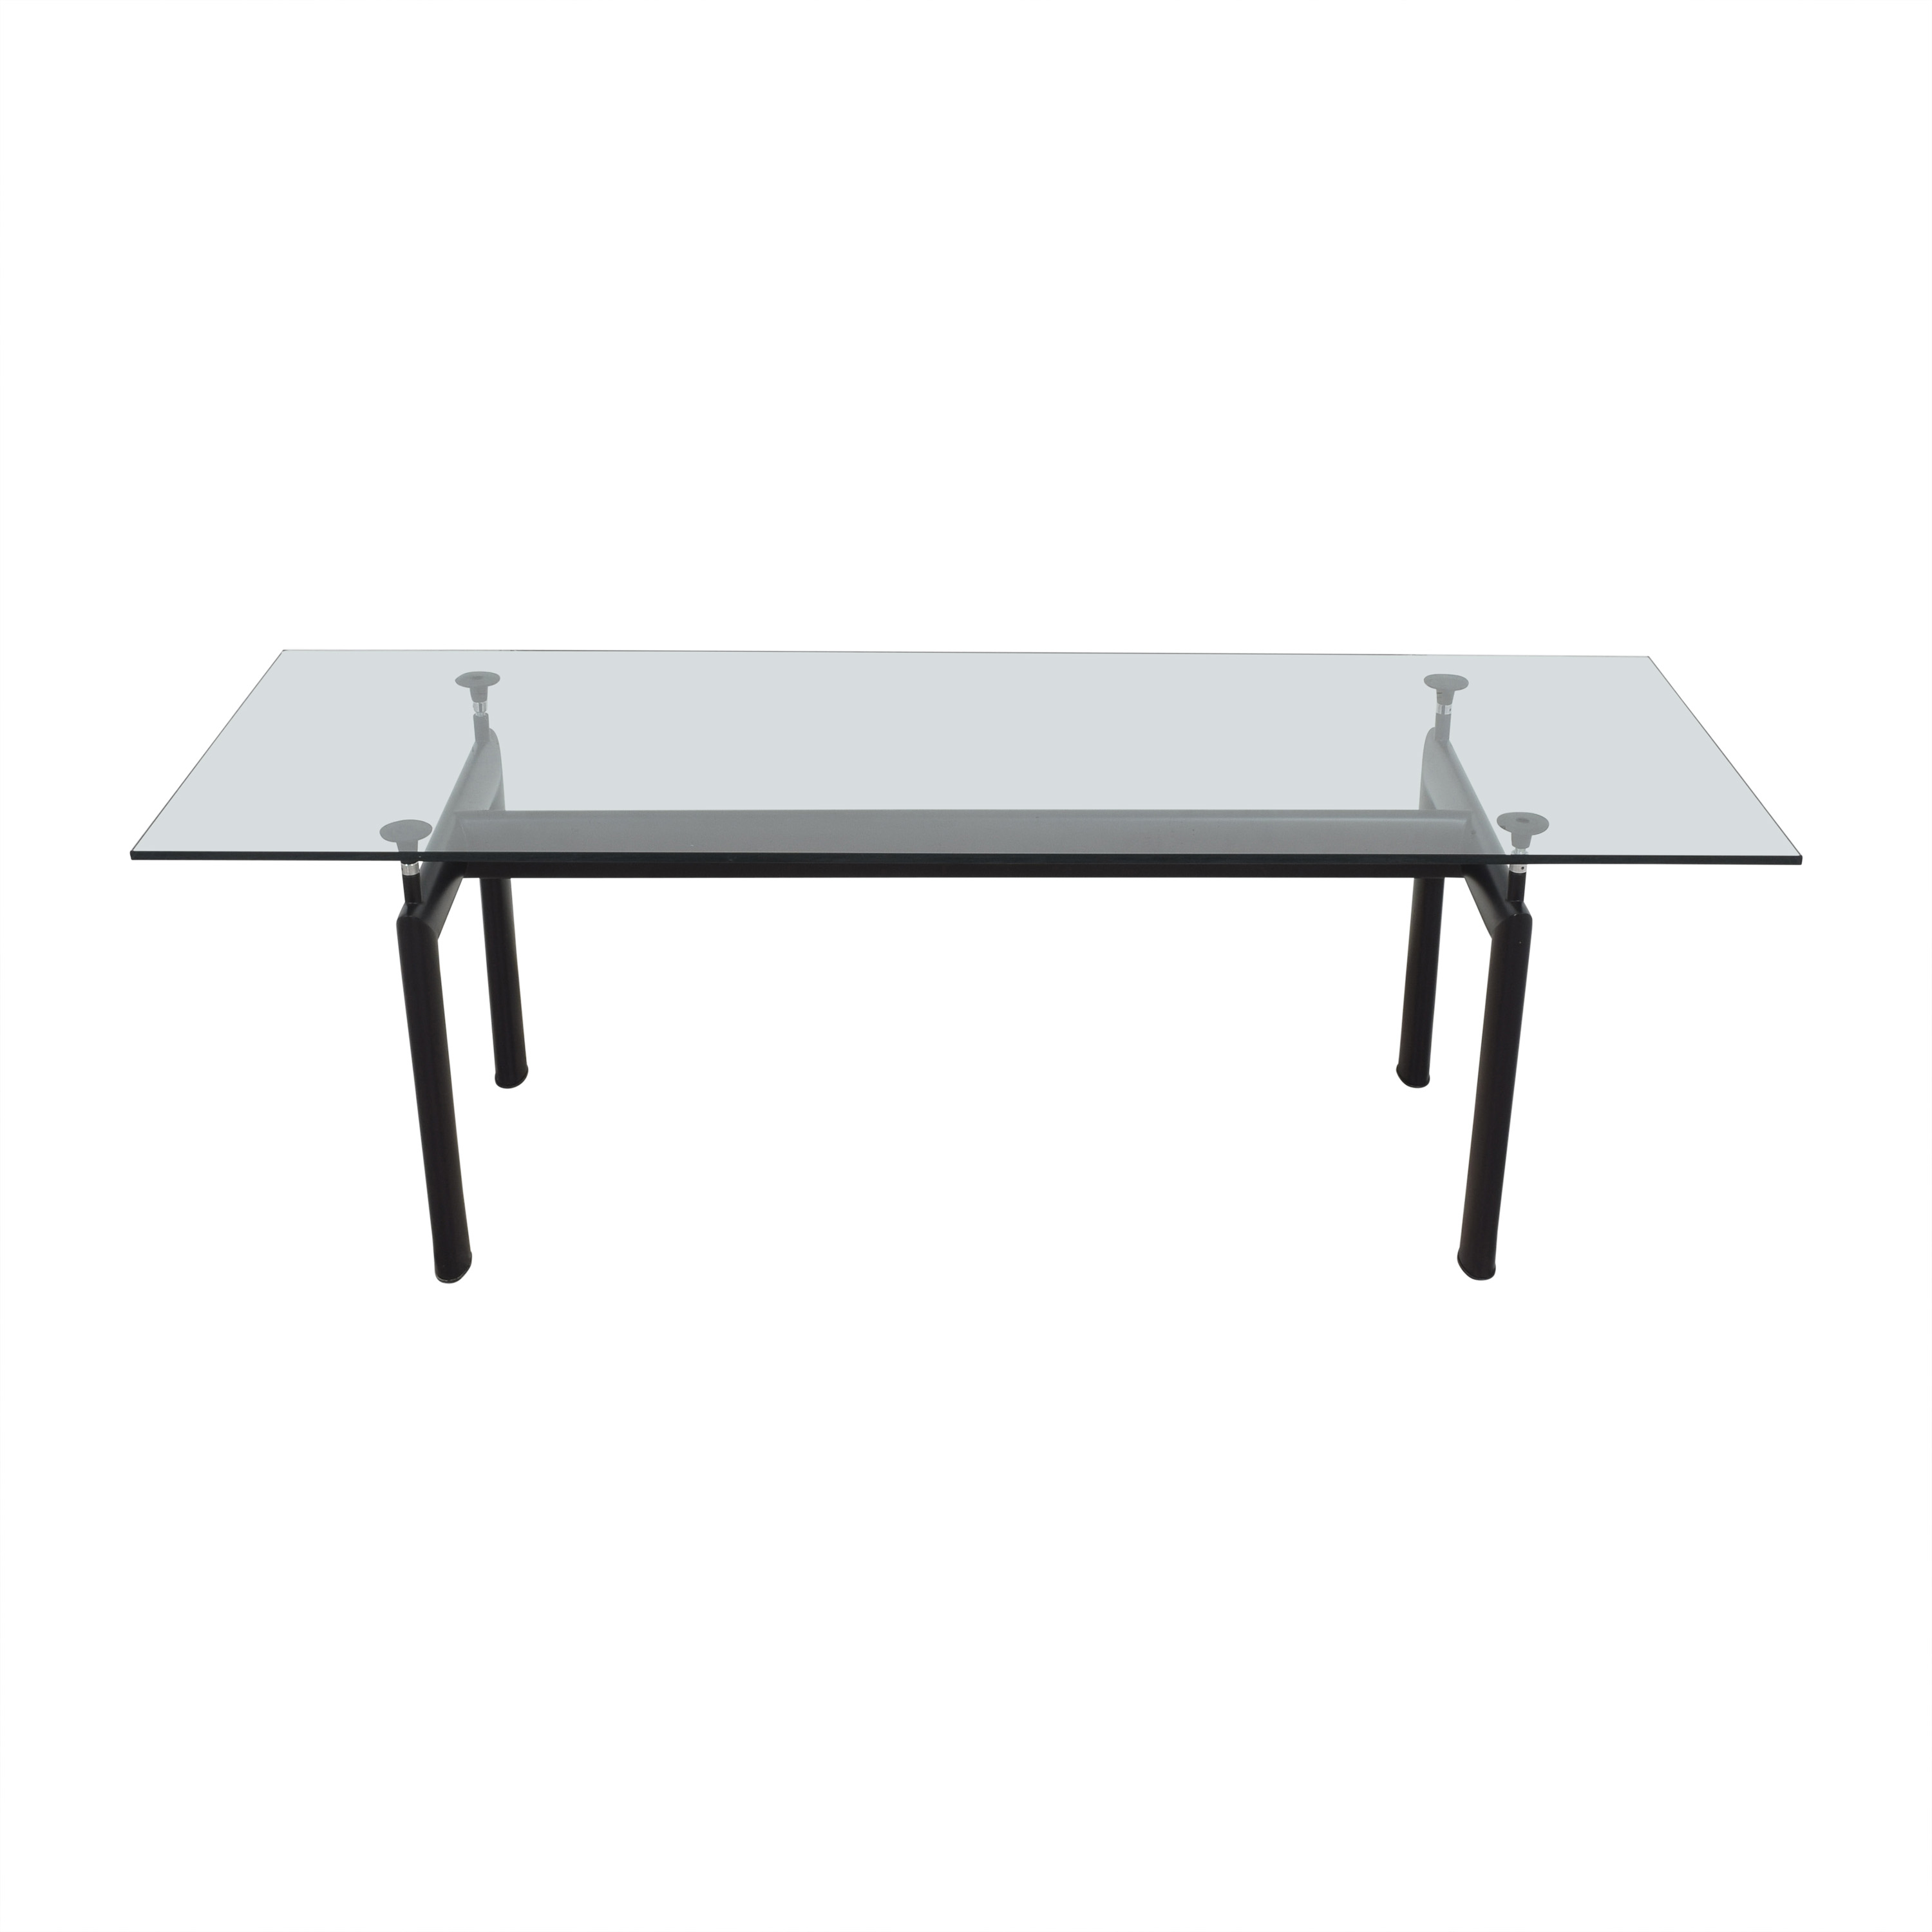 LC6-Style Dining Table dimensions